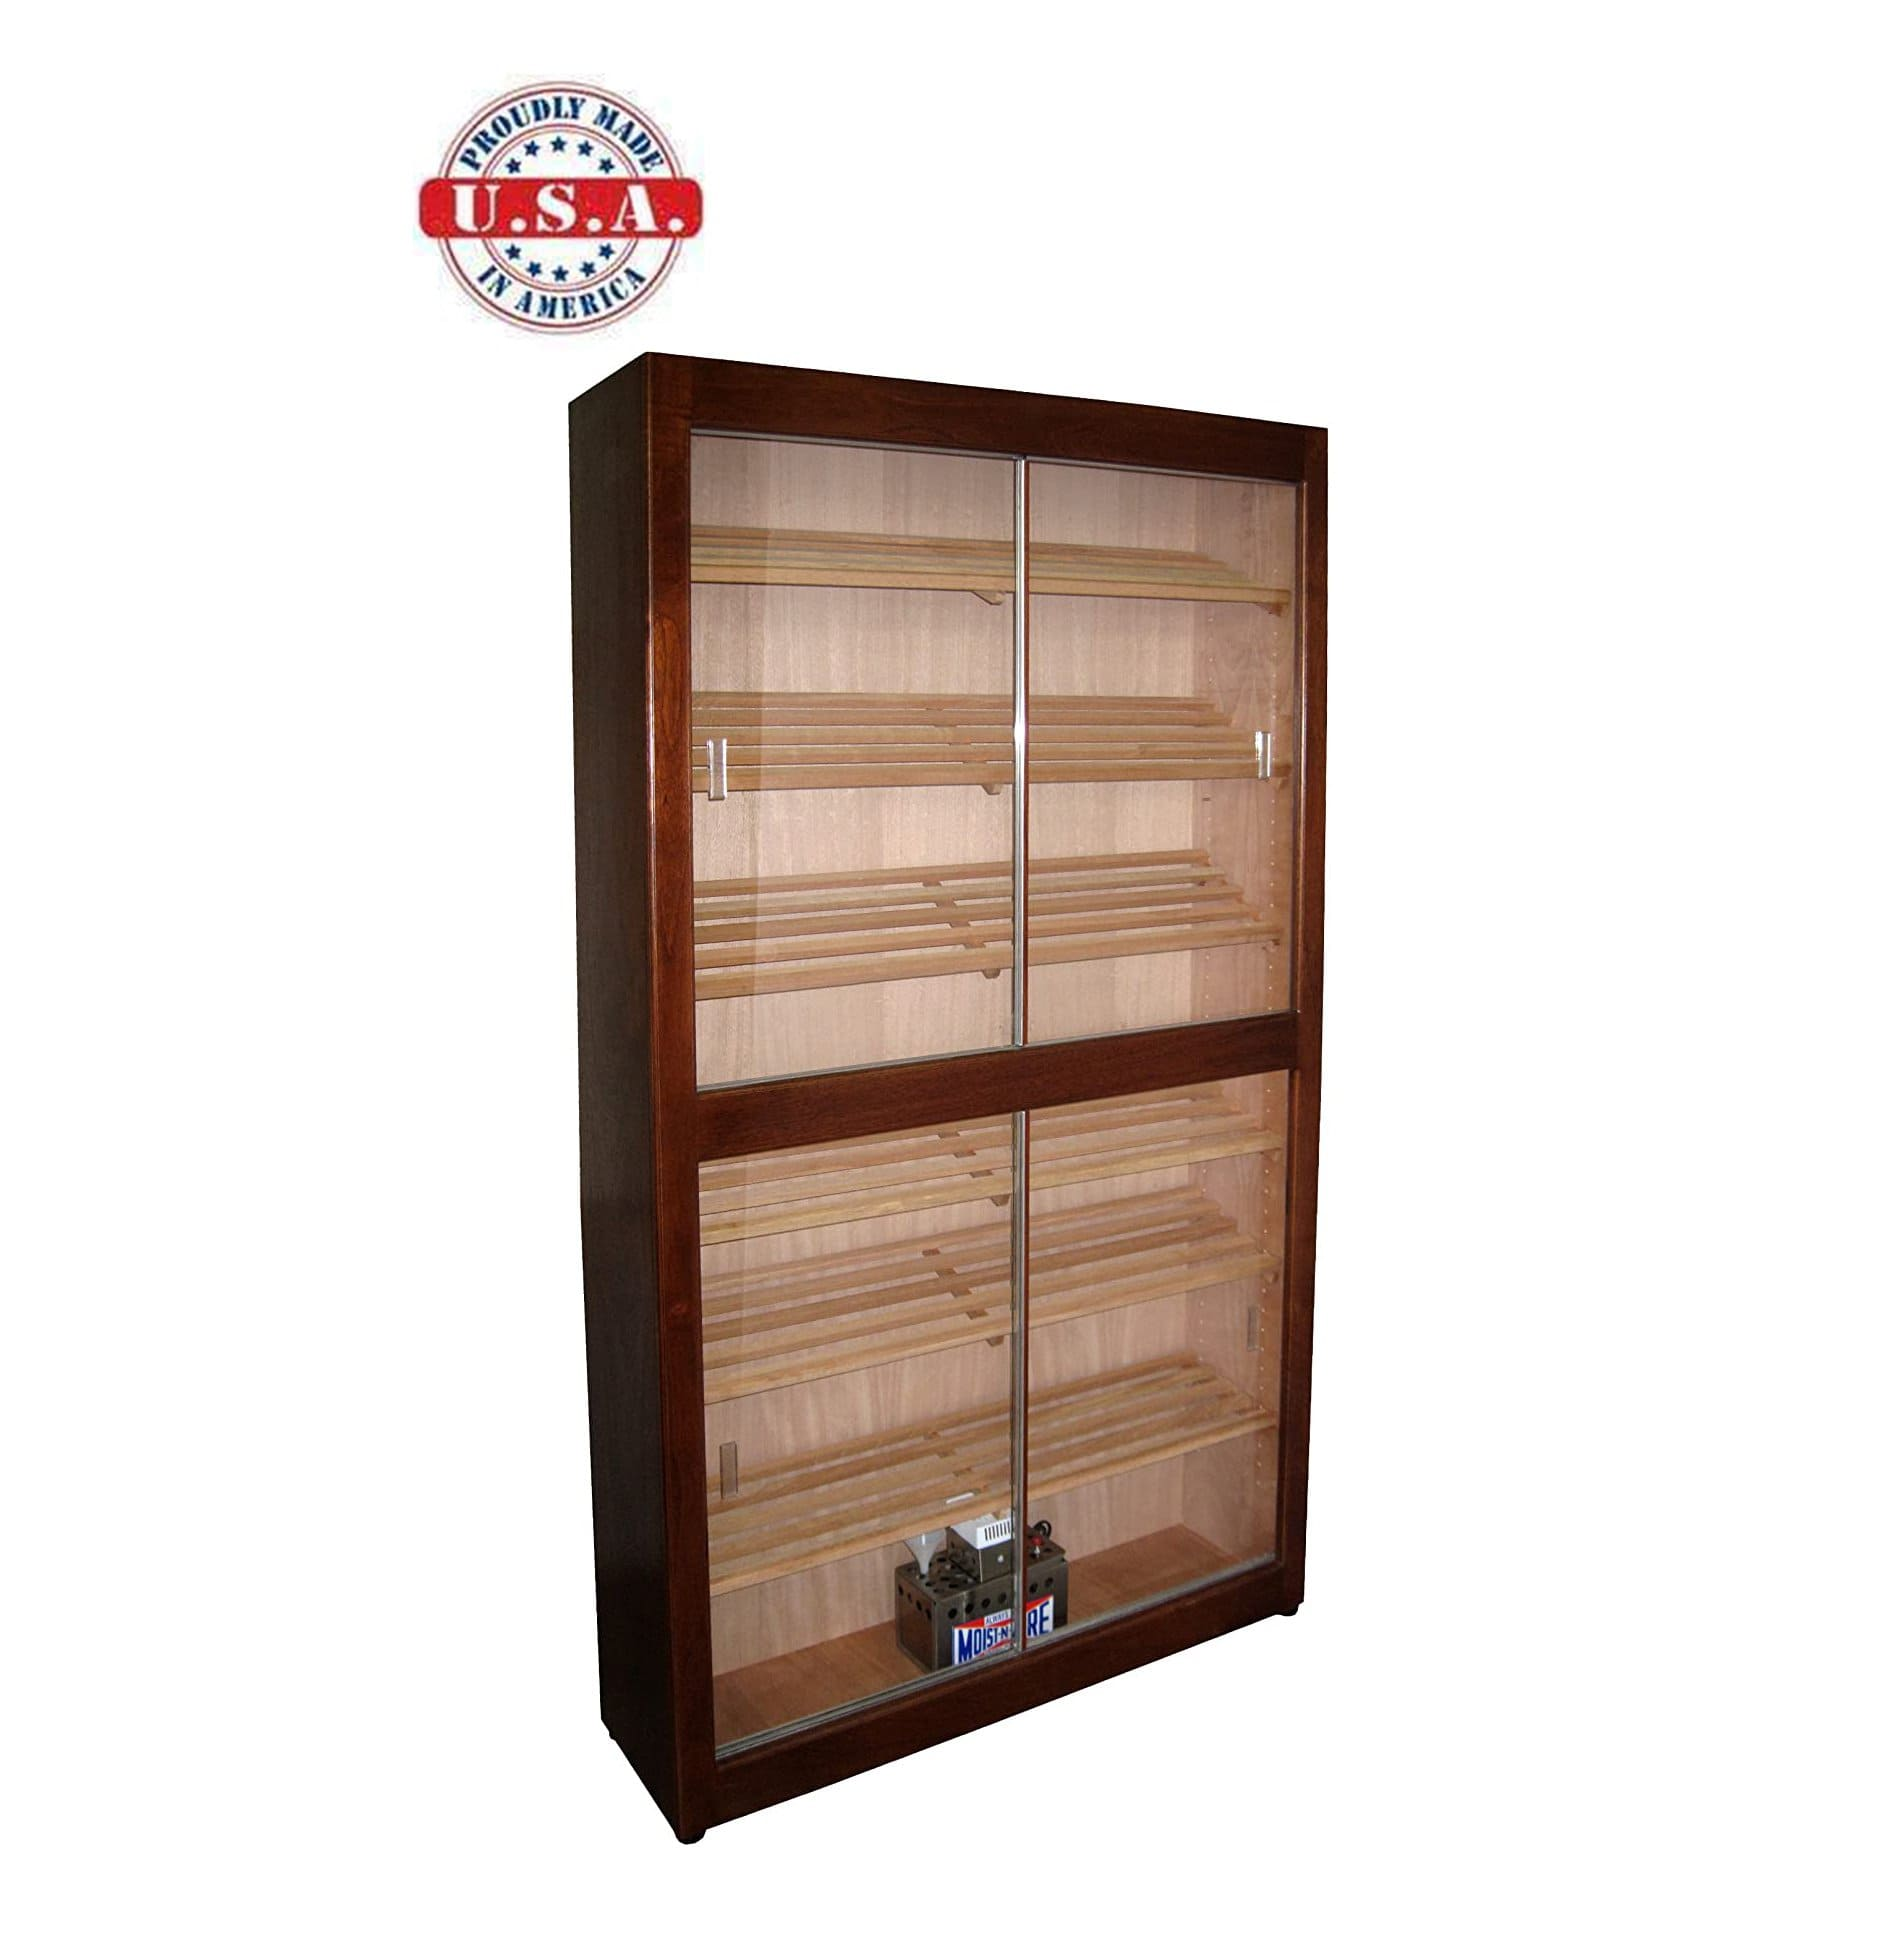 Elegant Bar HUMIDOR Model 3 Elegant Commercial Display Cigar Humidor, one of the best humidor cabinets